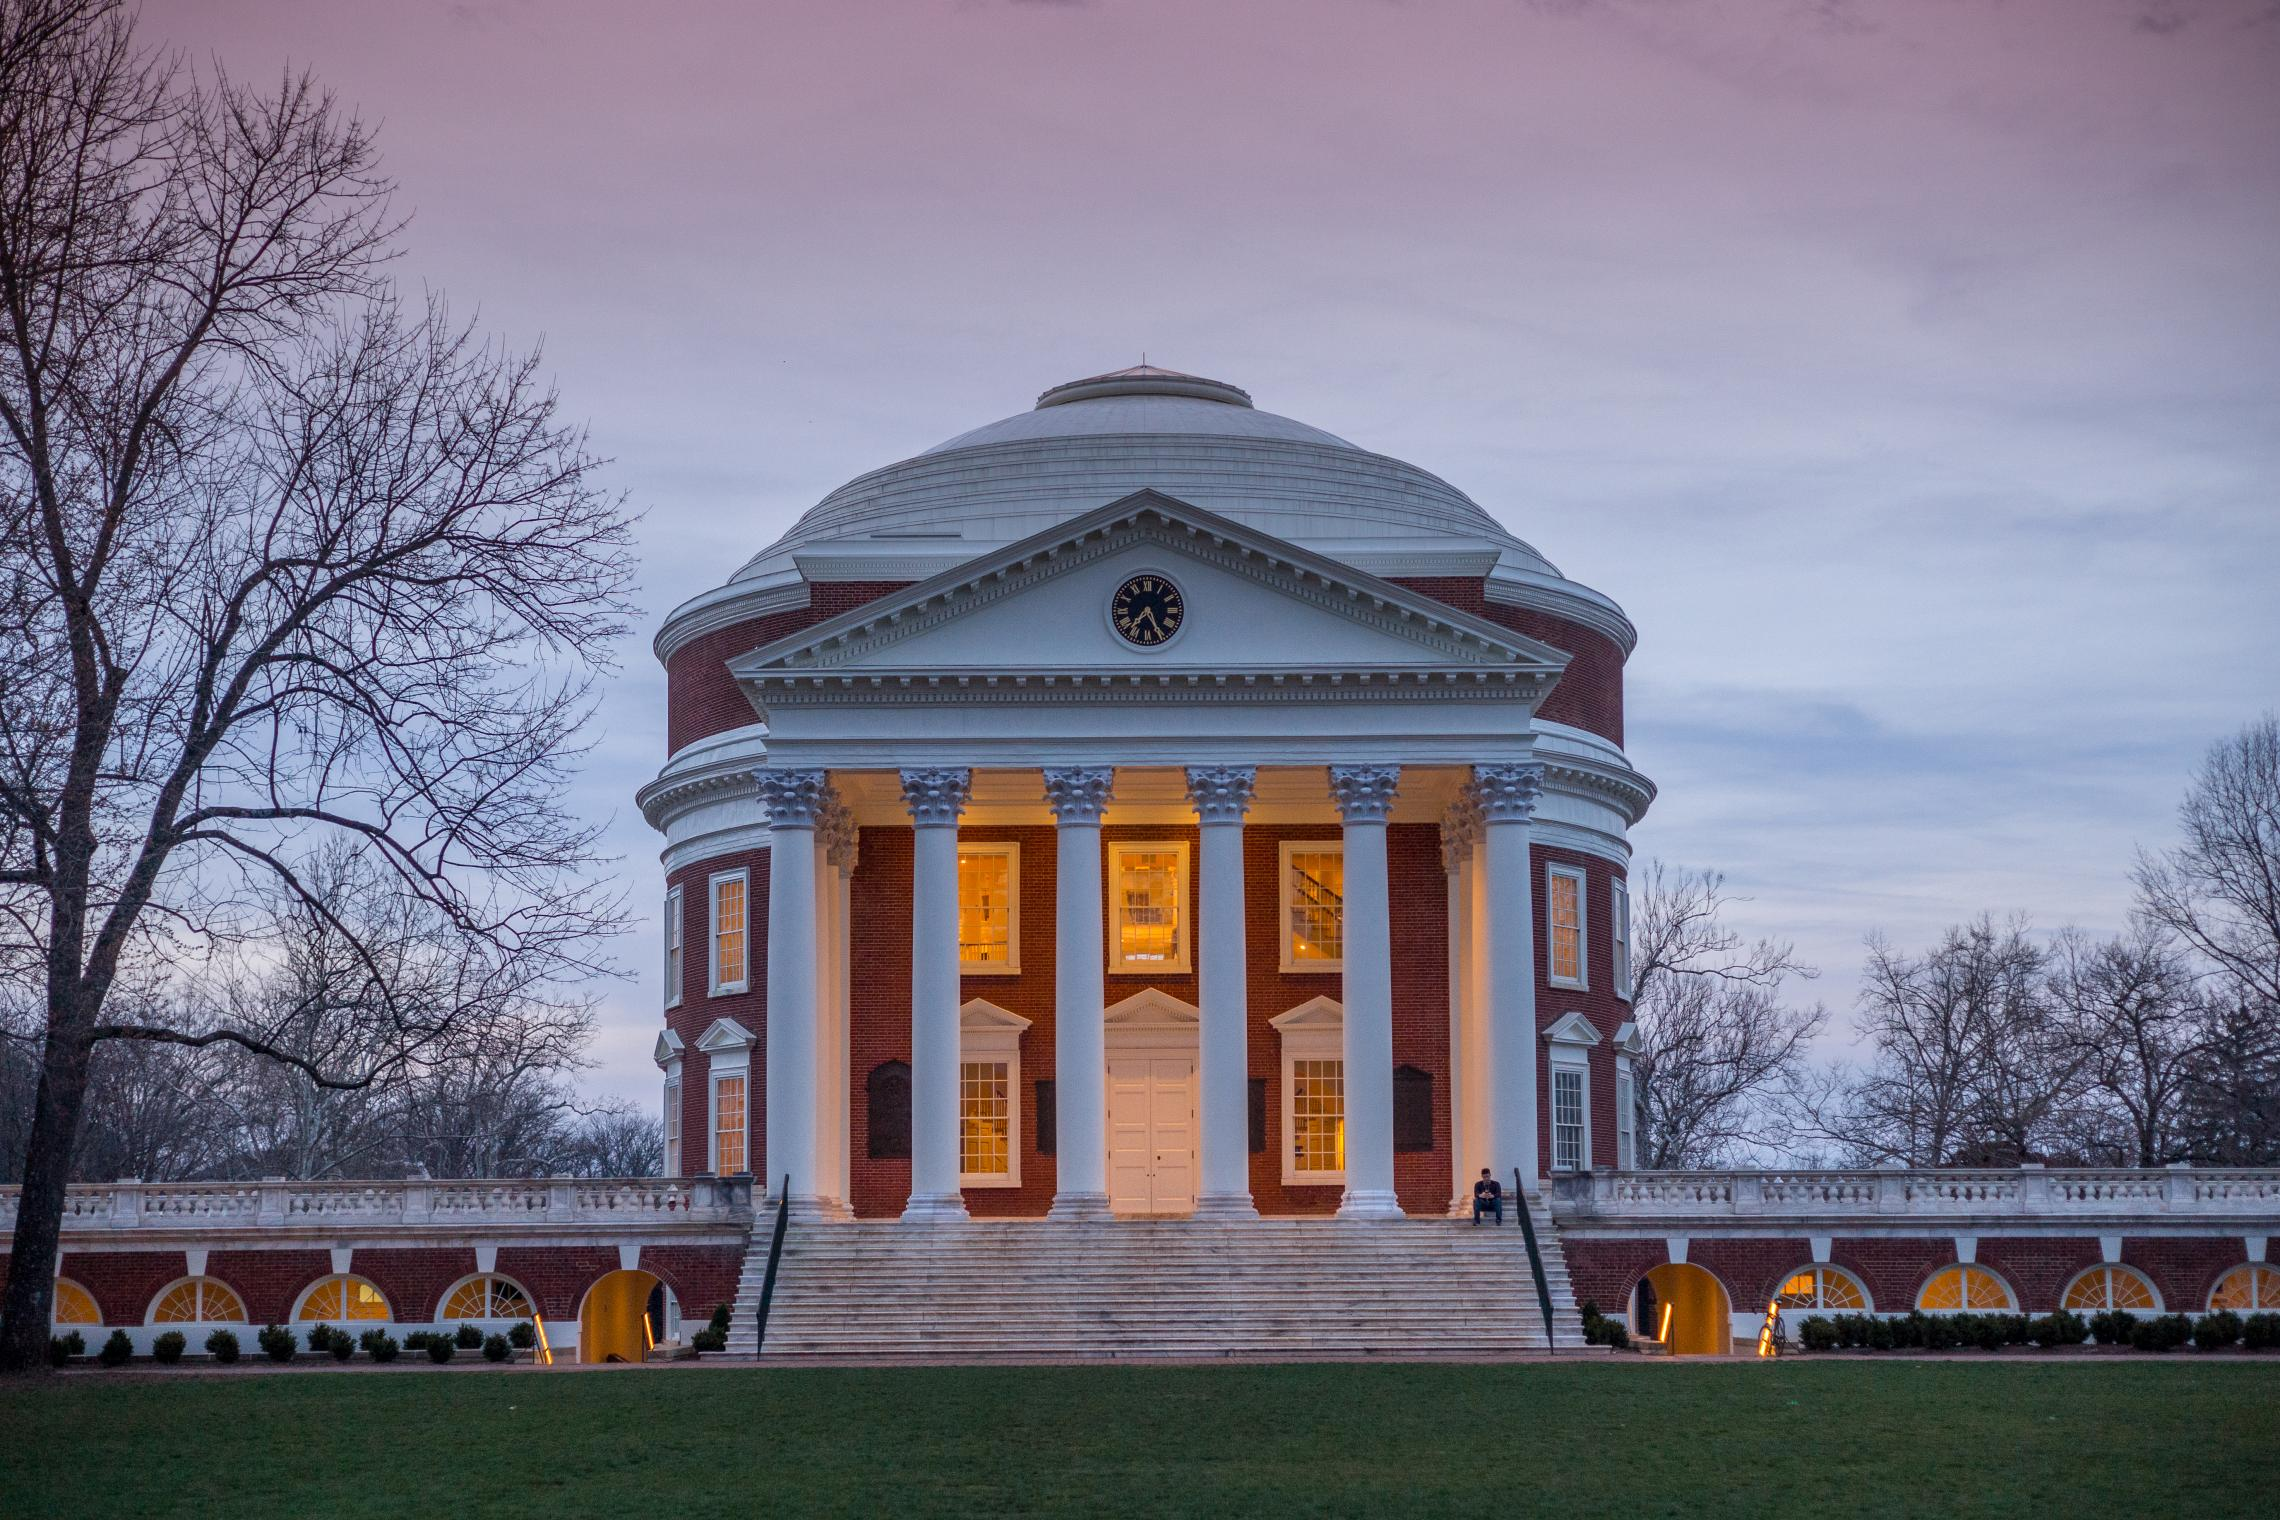 The outside of a building on the University of Virginia's campus.